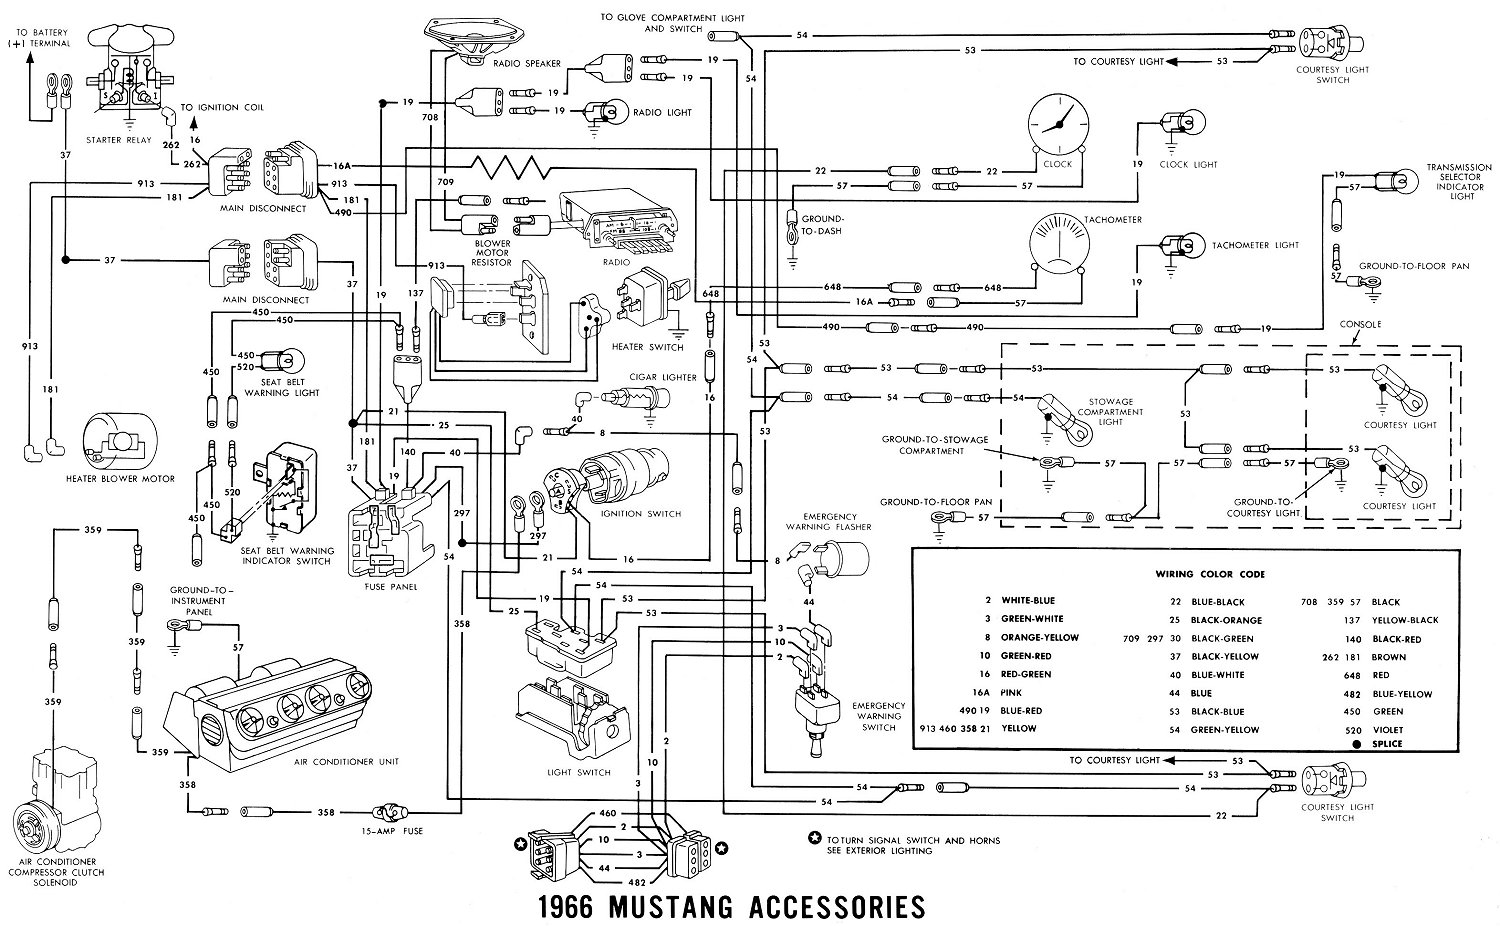 66acces1 1966 mustang wiring diagrams average joe restoration ford mustang wiring diagram at arjmand.co